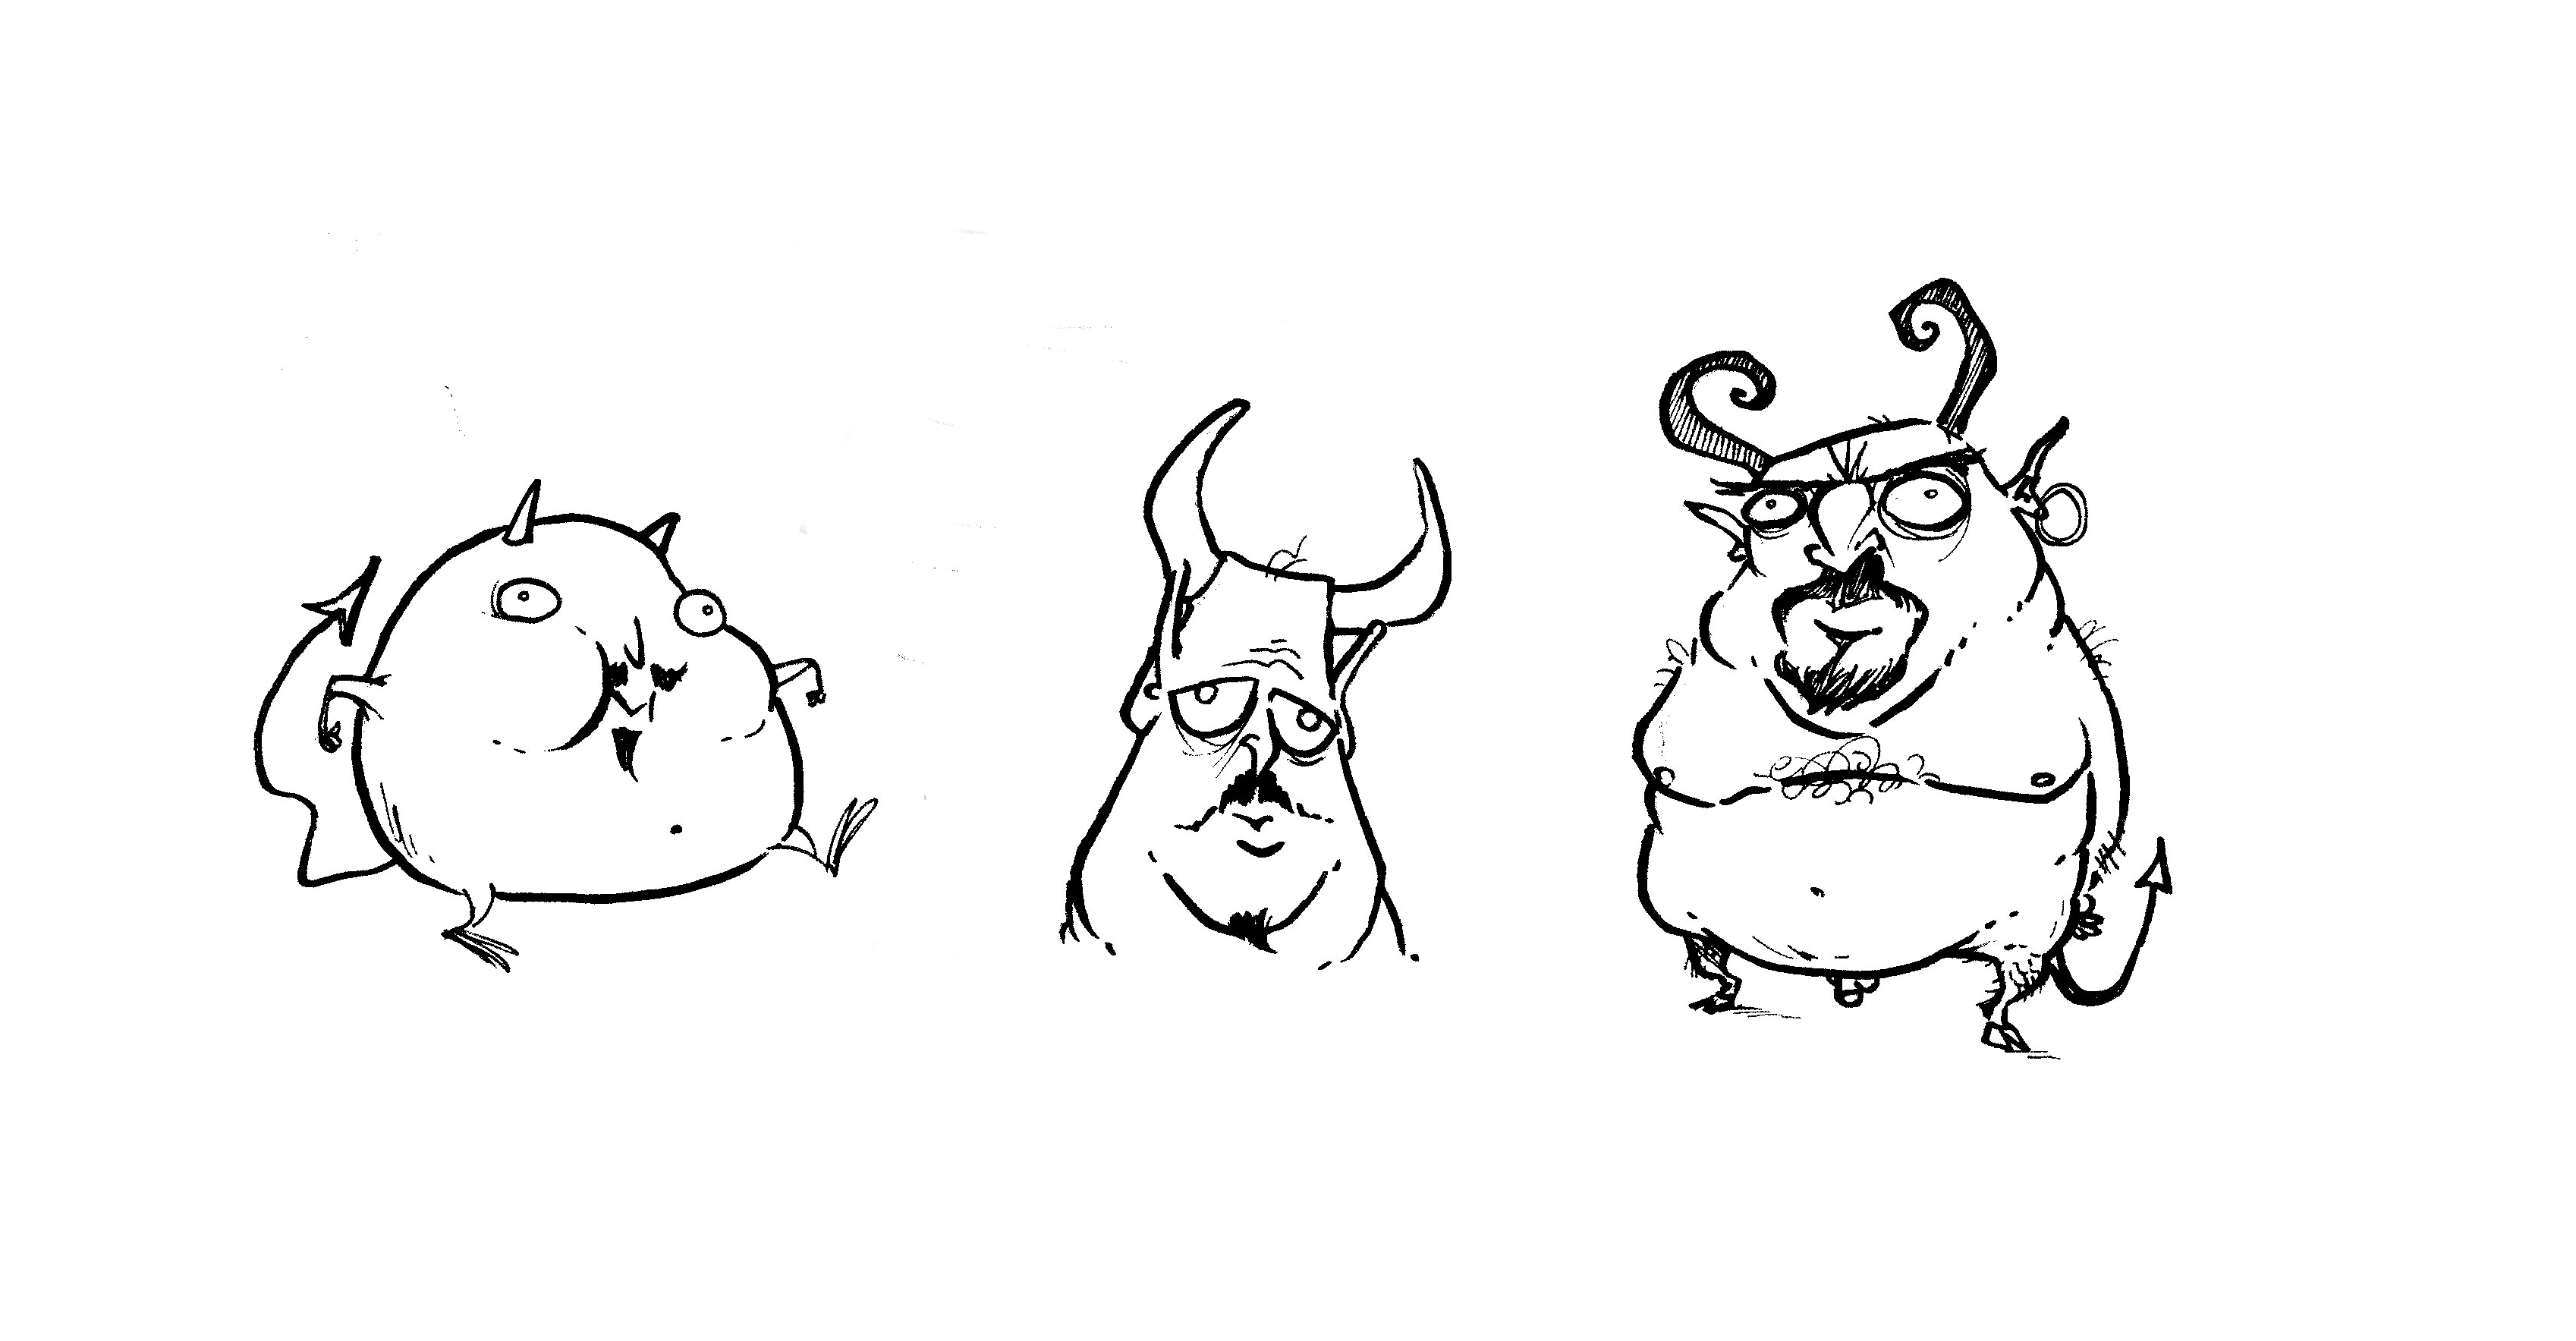 A friend asked to give him ideas for a tattoo design. I think he said something about slovenly demons.